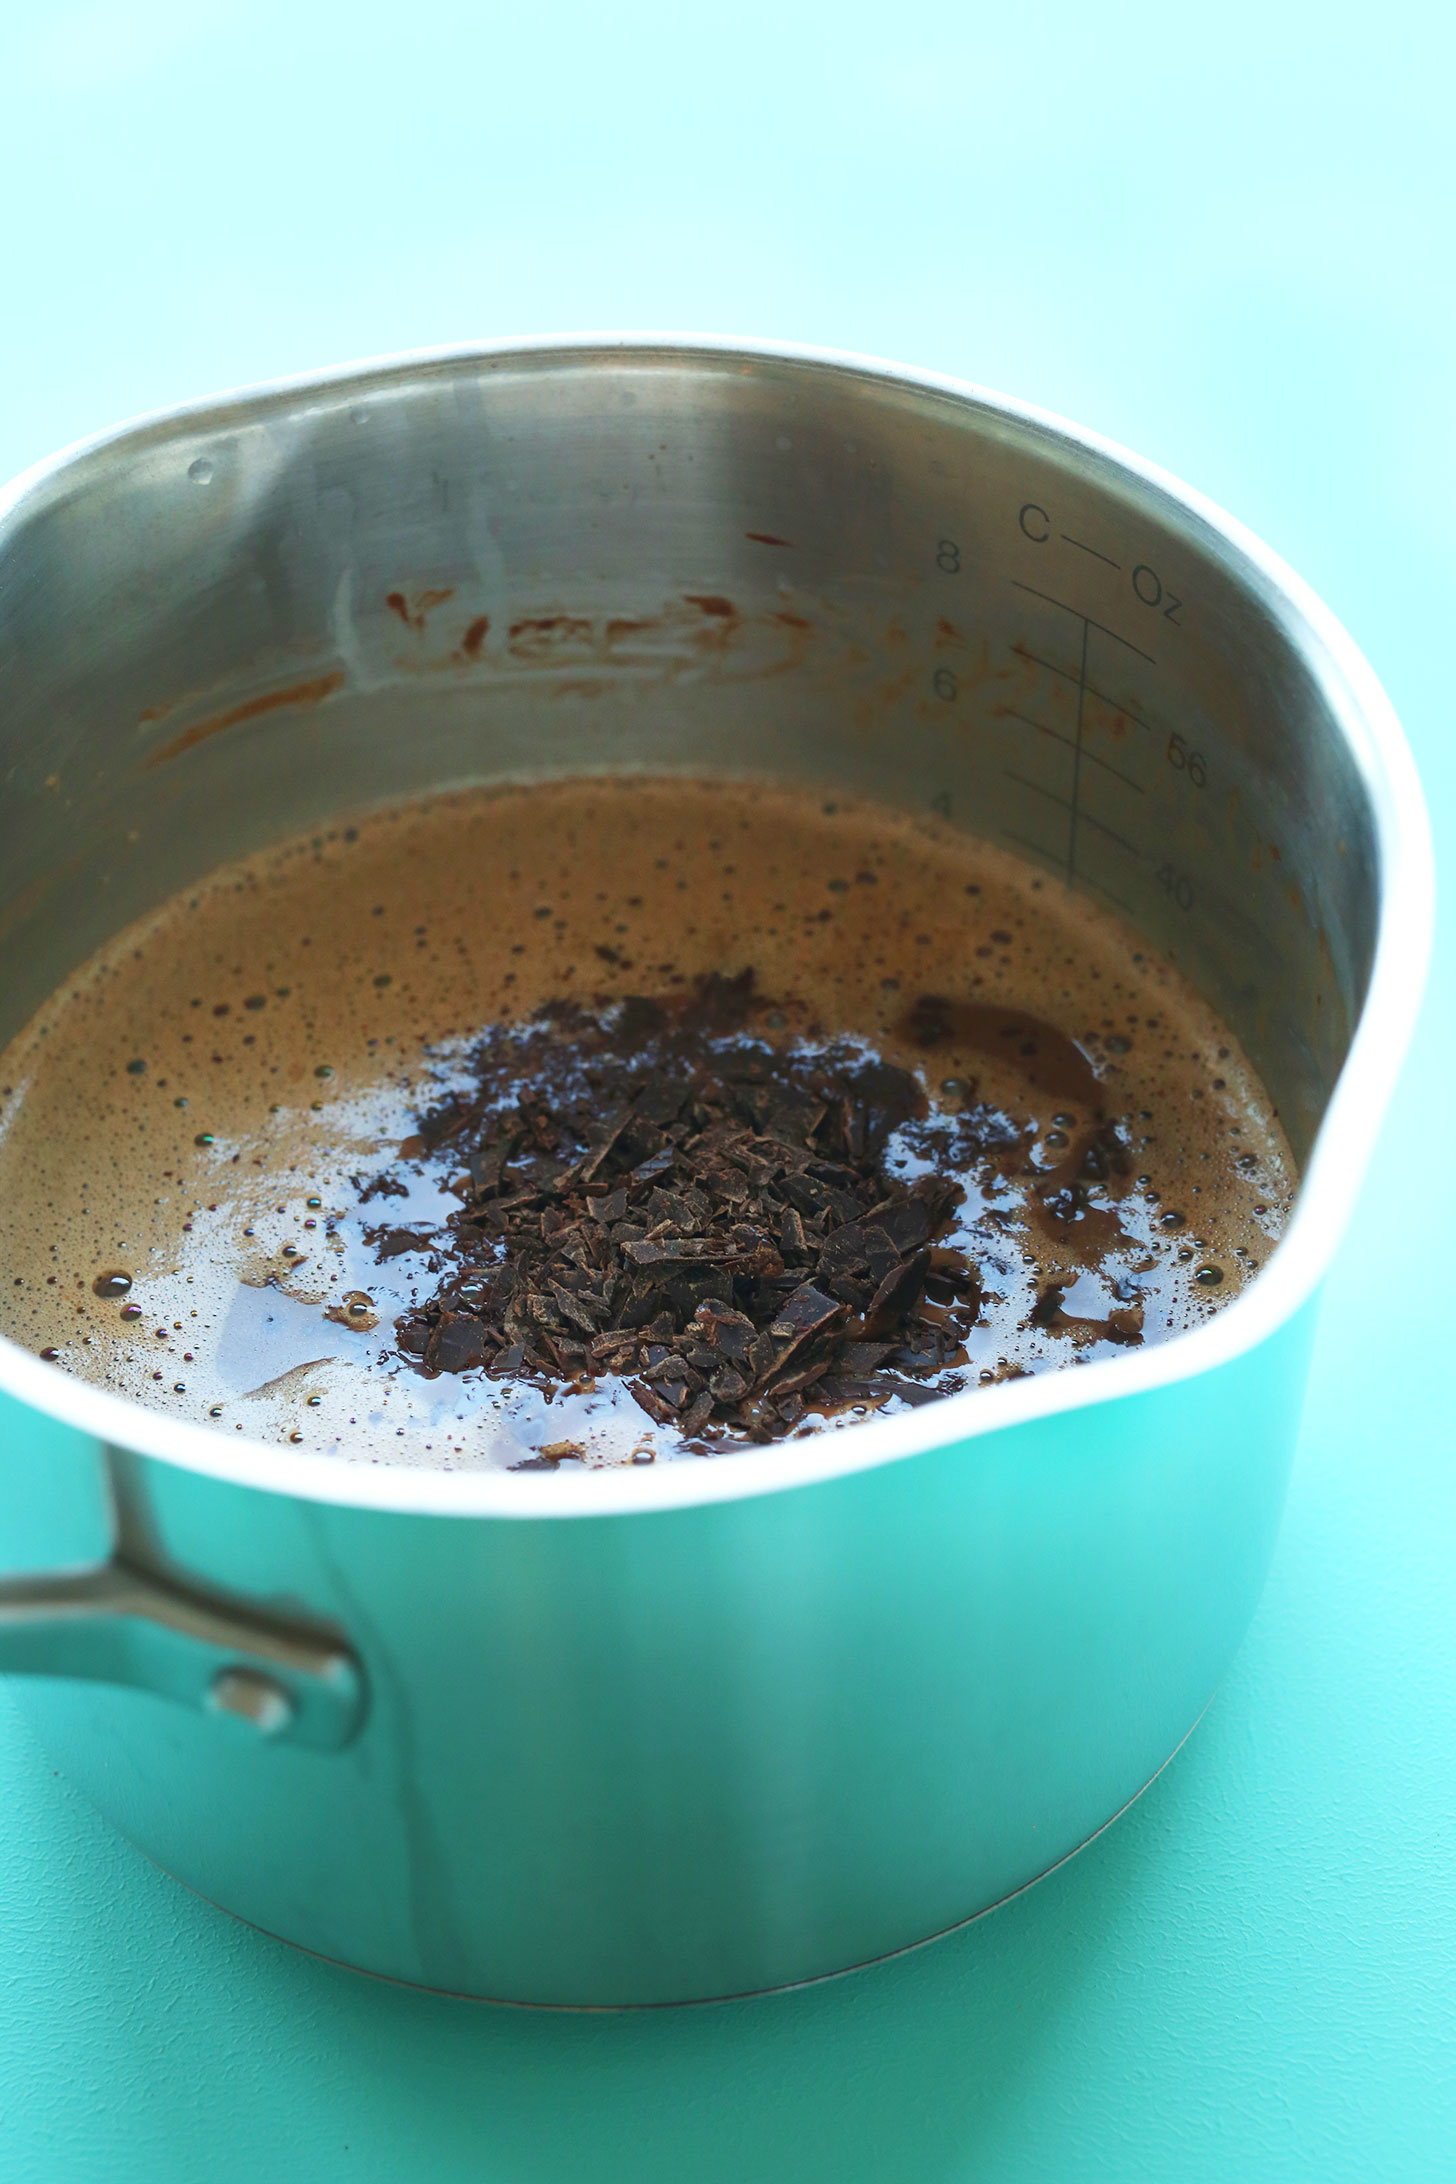 Adding chocolate shavings to a saucepan for homemade vegan chocolate ice cream